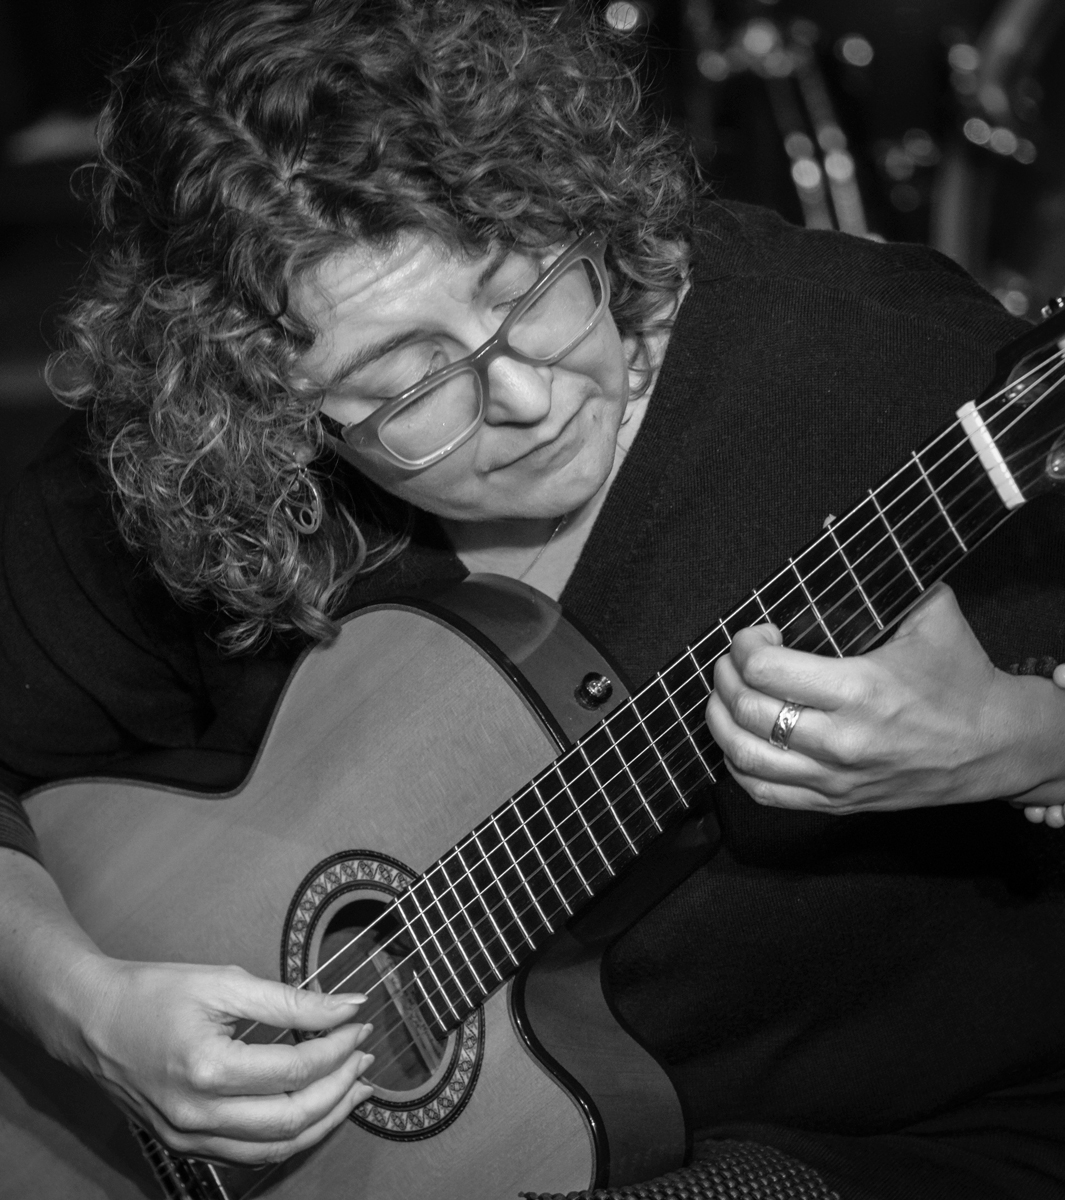 Kim Perlak 2018 Kim Perlak, Chair of the Guitar Department hunched over her guitar, the neck of her instrument dissects this frame diagonally. Kim's face and hands stand out against the neutral tones.